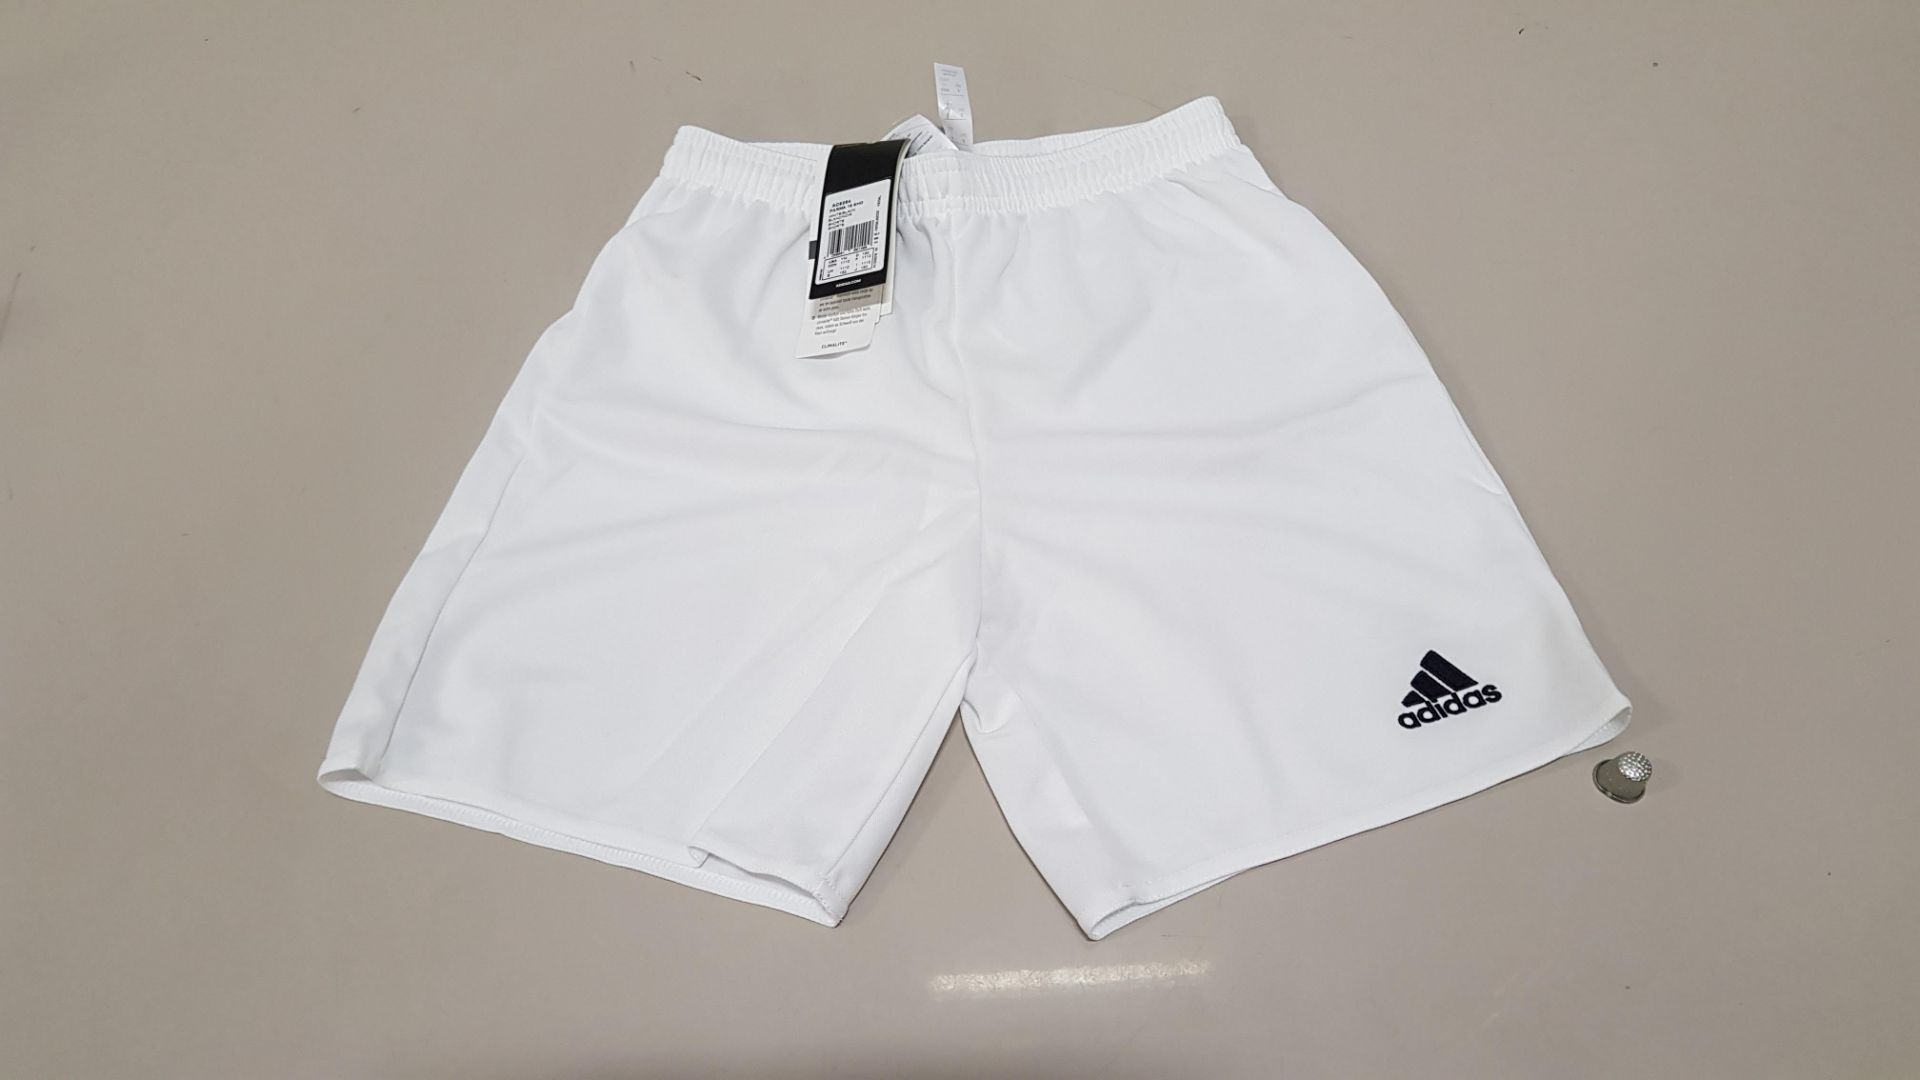 20 X BRAND NEW ADIDAS PARMA 16 SHORTS AGE 11-12 YEARS (PICK LOOSE)